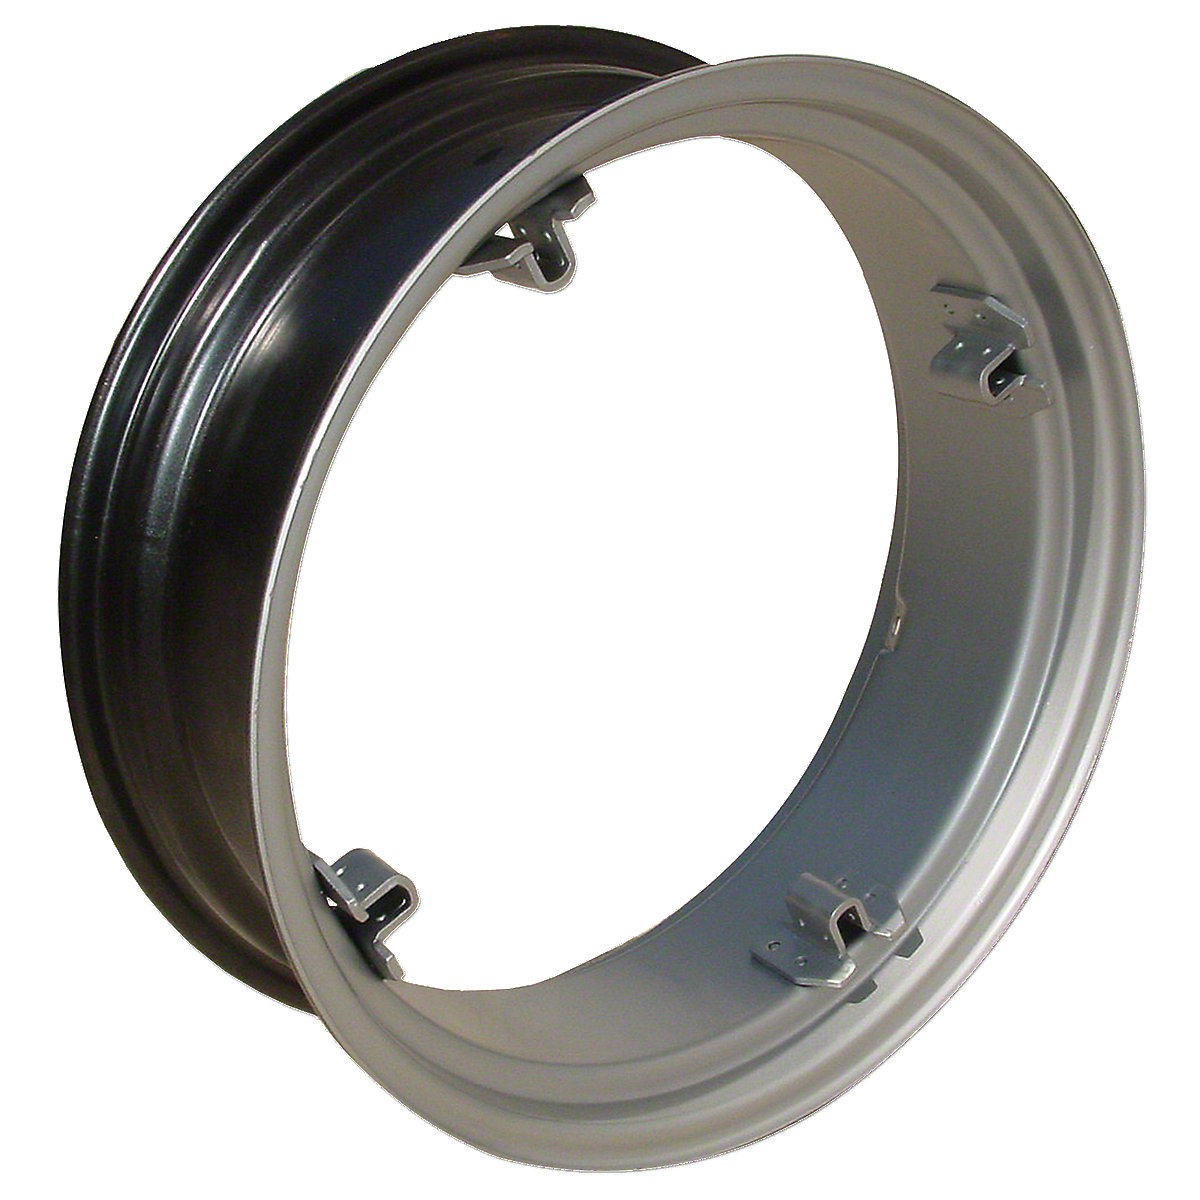 8X24 4 Loop Rear Rim For Oliver Super 44. 4 Loop Mounting Holes 14 Center to Center.  Please check and measure your tractor closely because if this rim does not fit, we do not pay return shipping on rims.